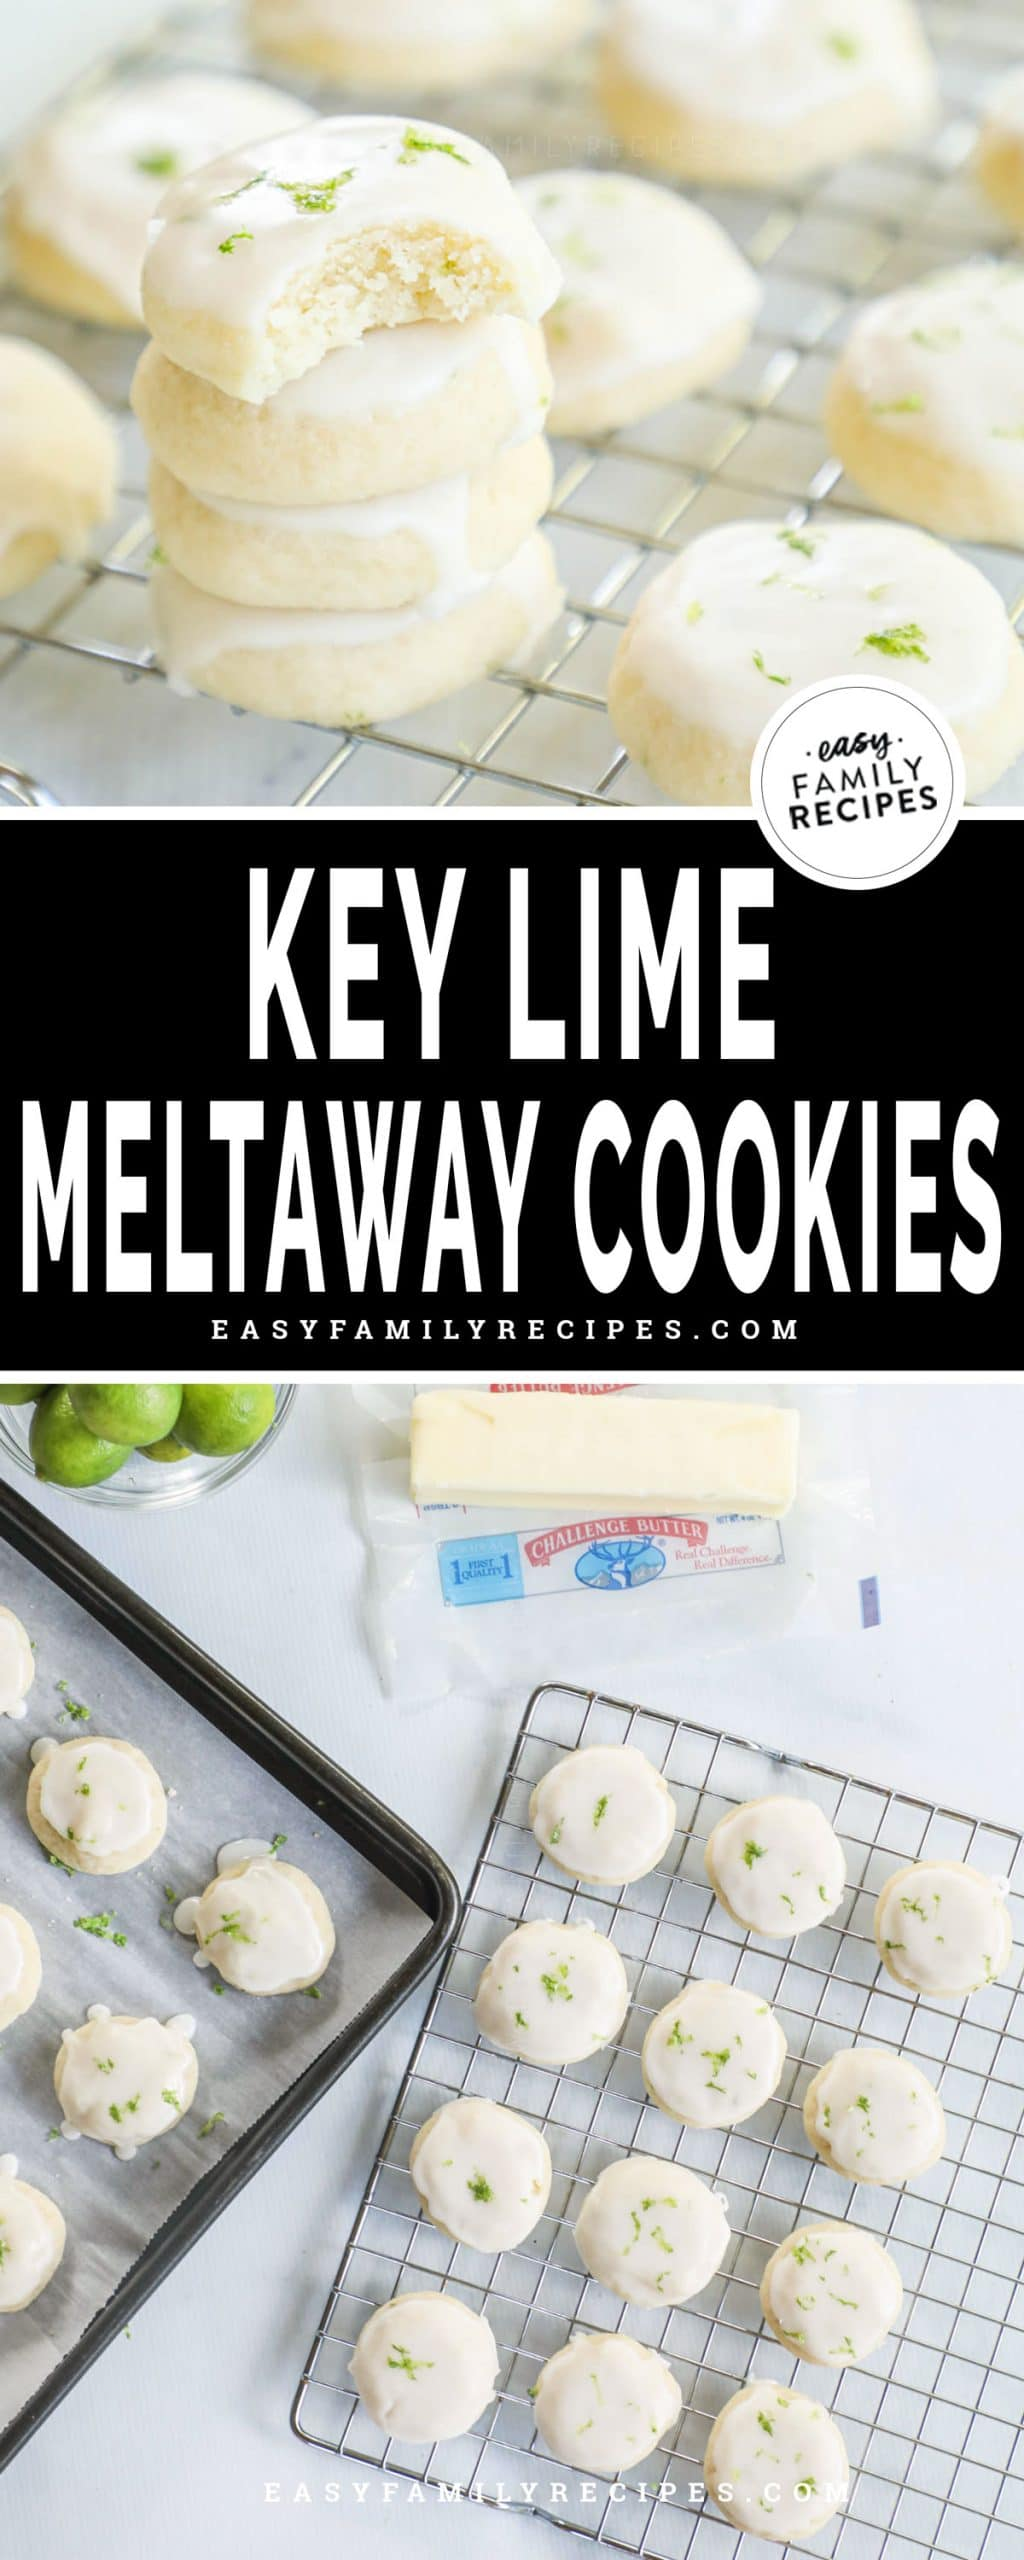 Soft Key Lime Cookie with a bite out of it and key lime cookies cooling on a baking rack.